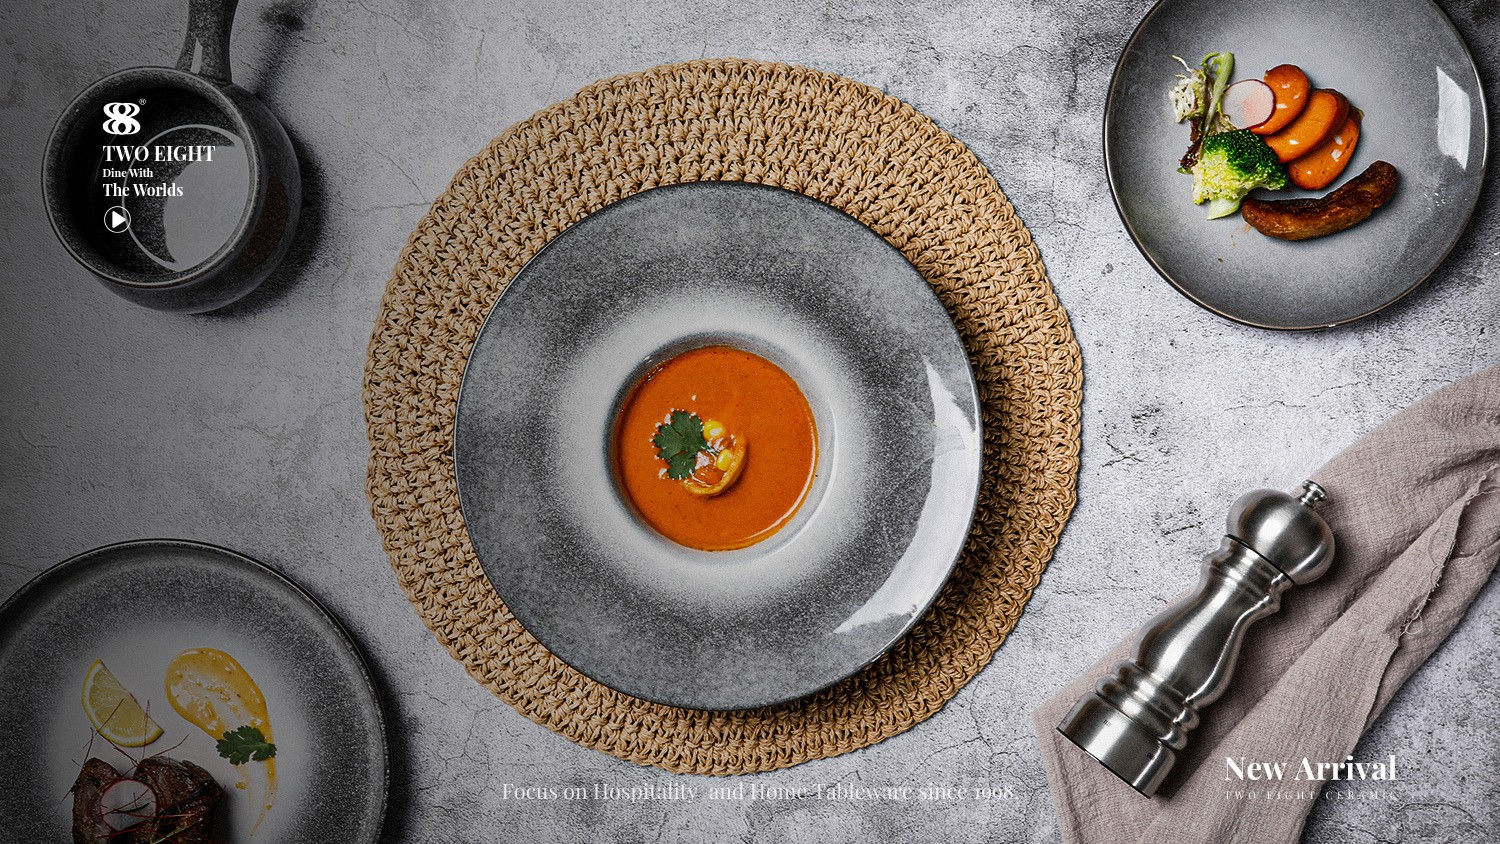 news-Two Eight-Different Types Of Dinnerware Used In Hotels And Restaurants-img